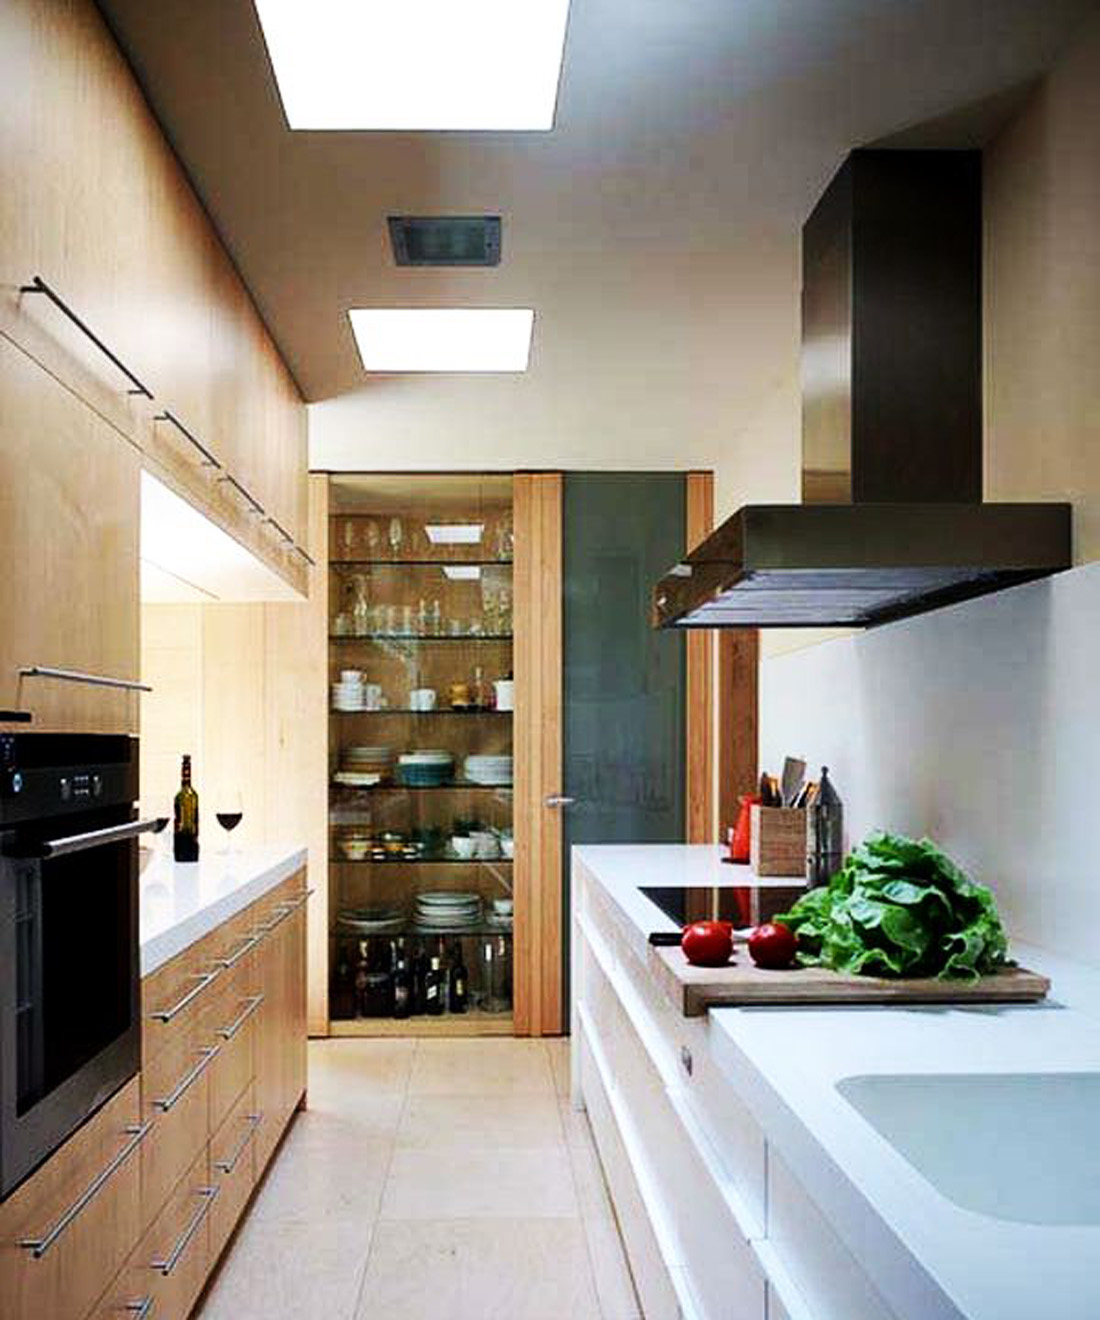 kitchen design ideas for small space 25 modern small kitchen design ideas 116